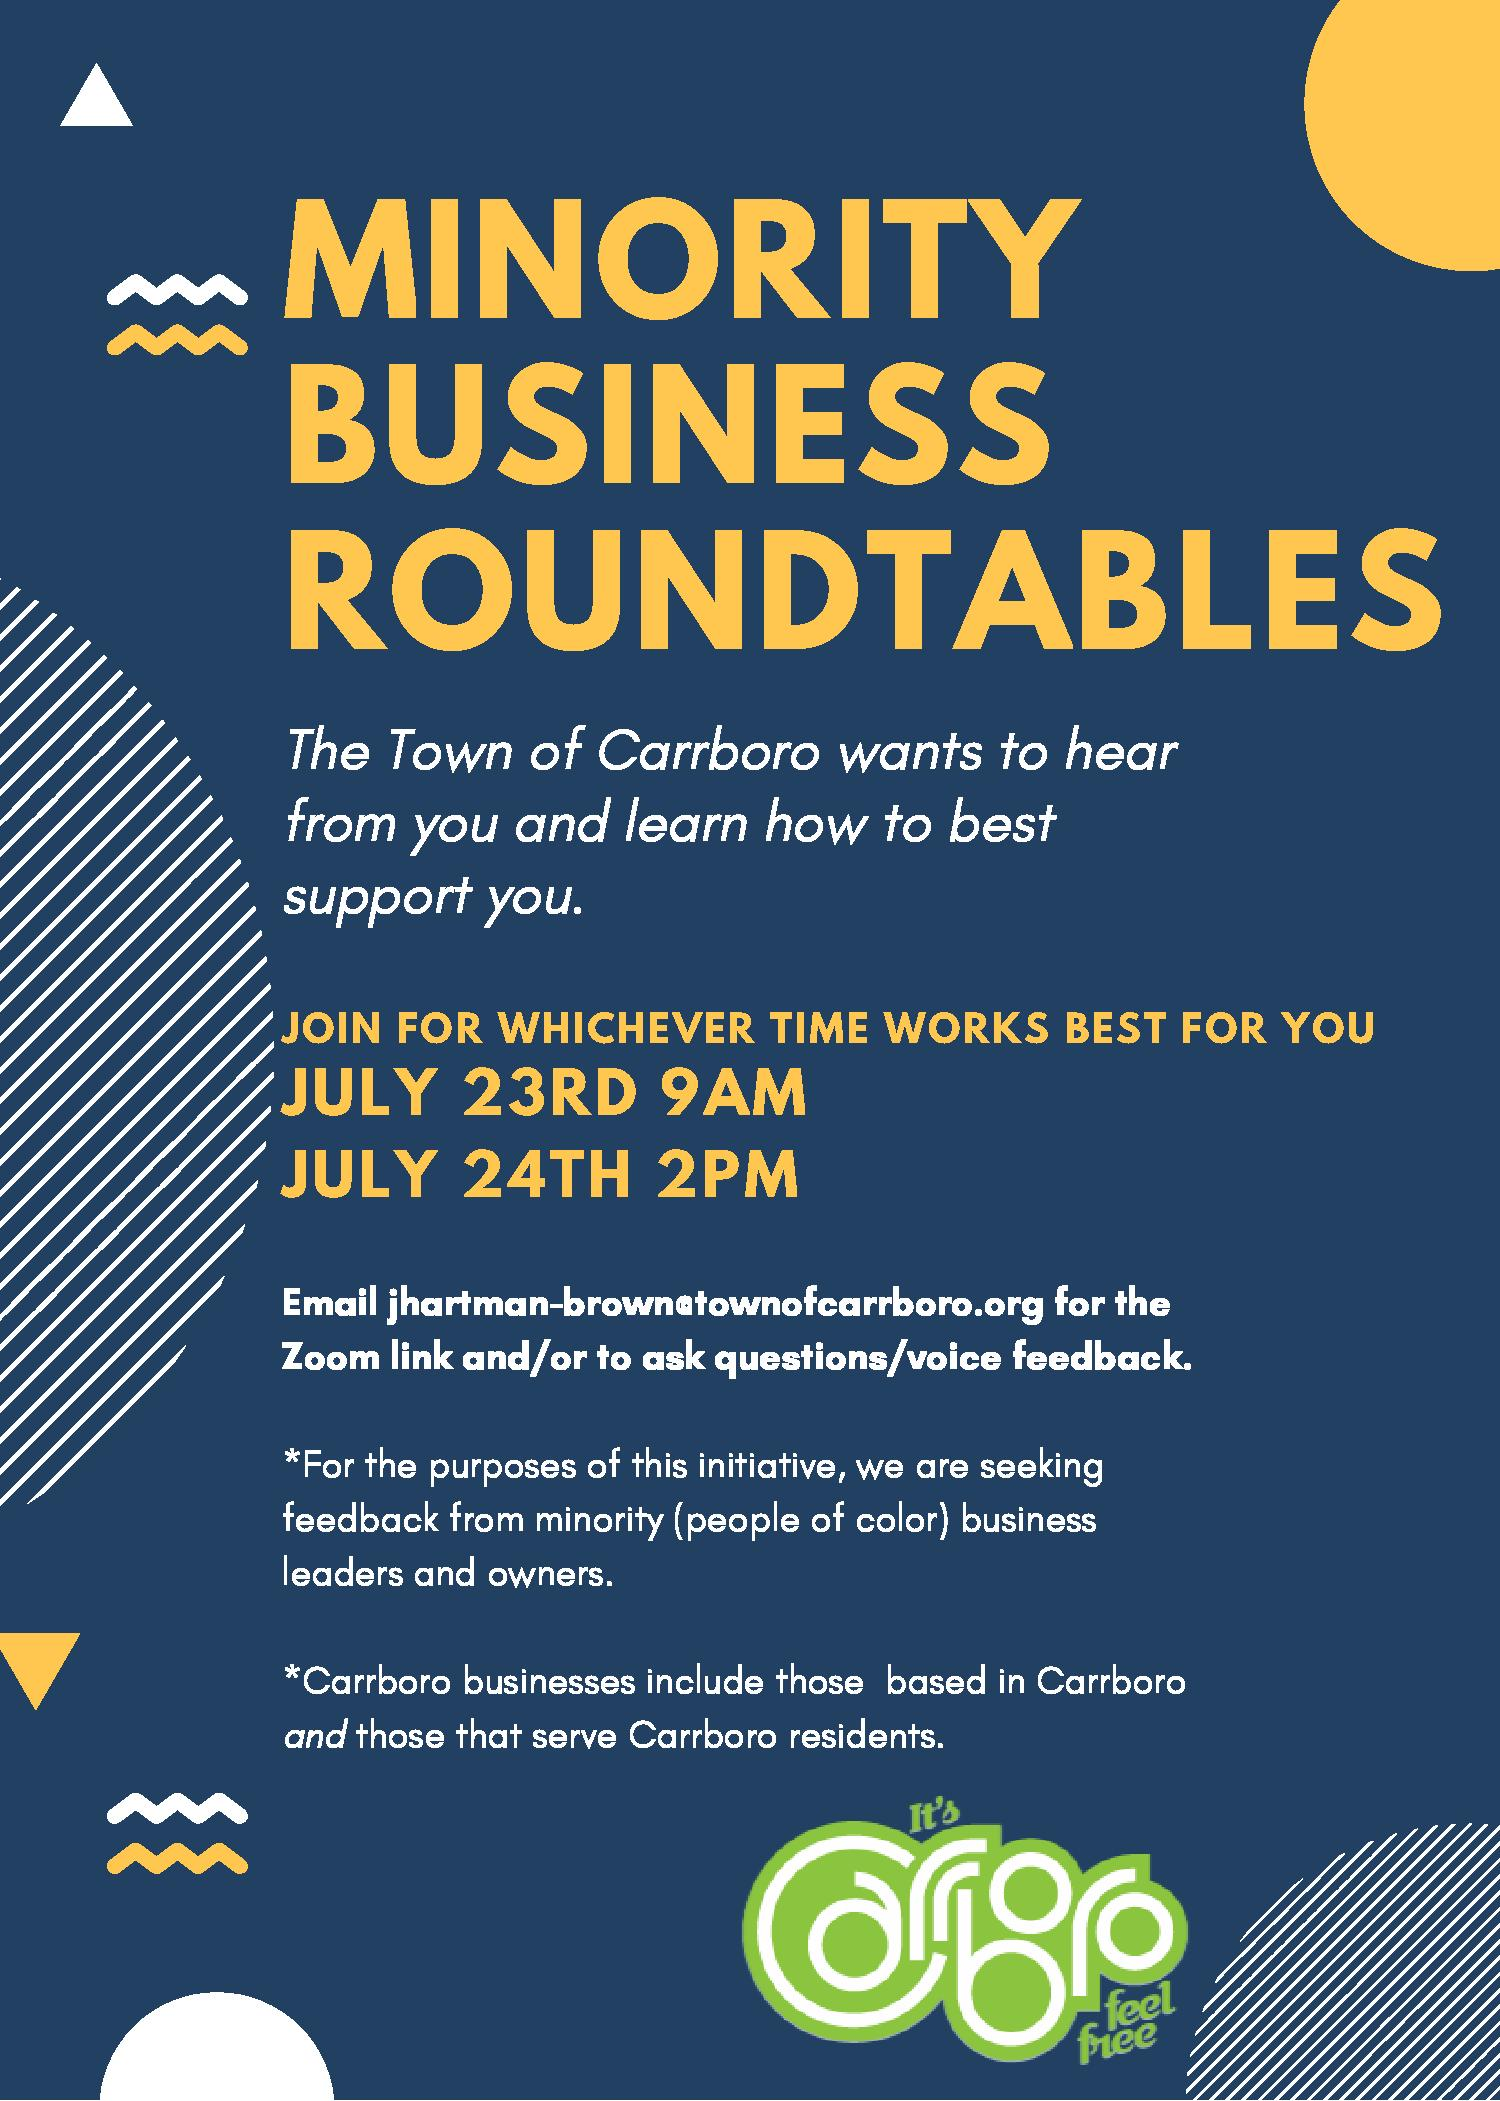 Minority Business Roundtables